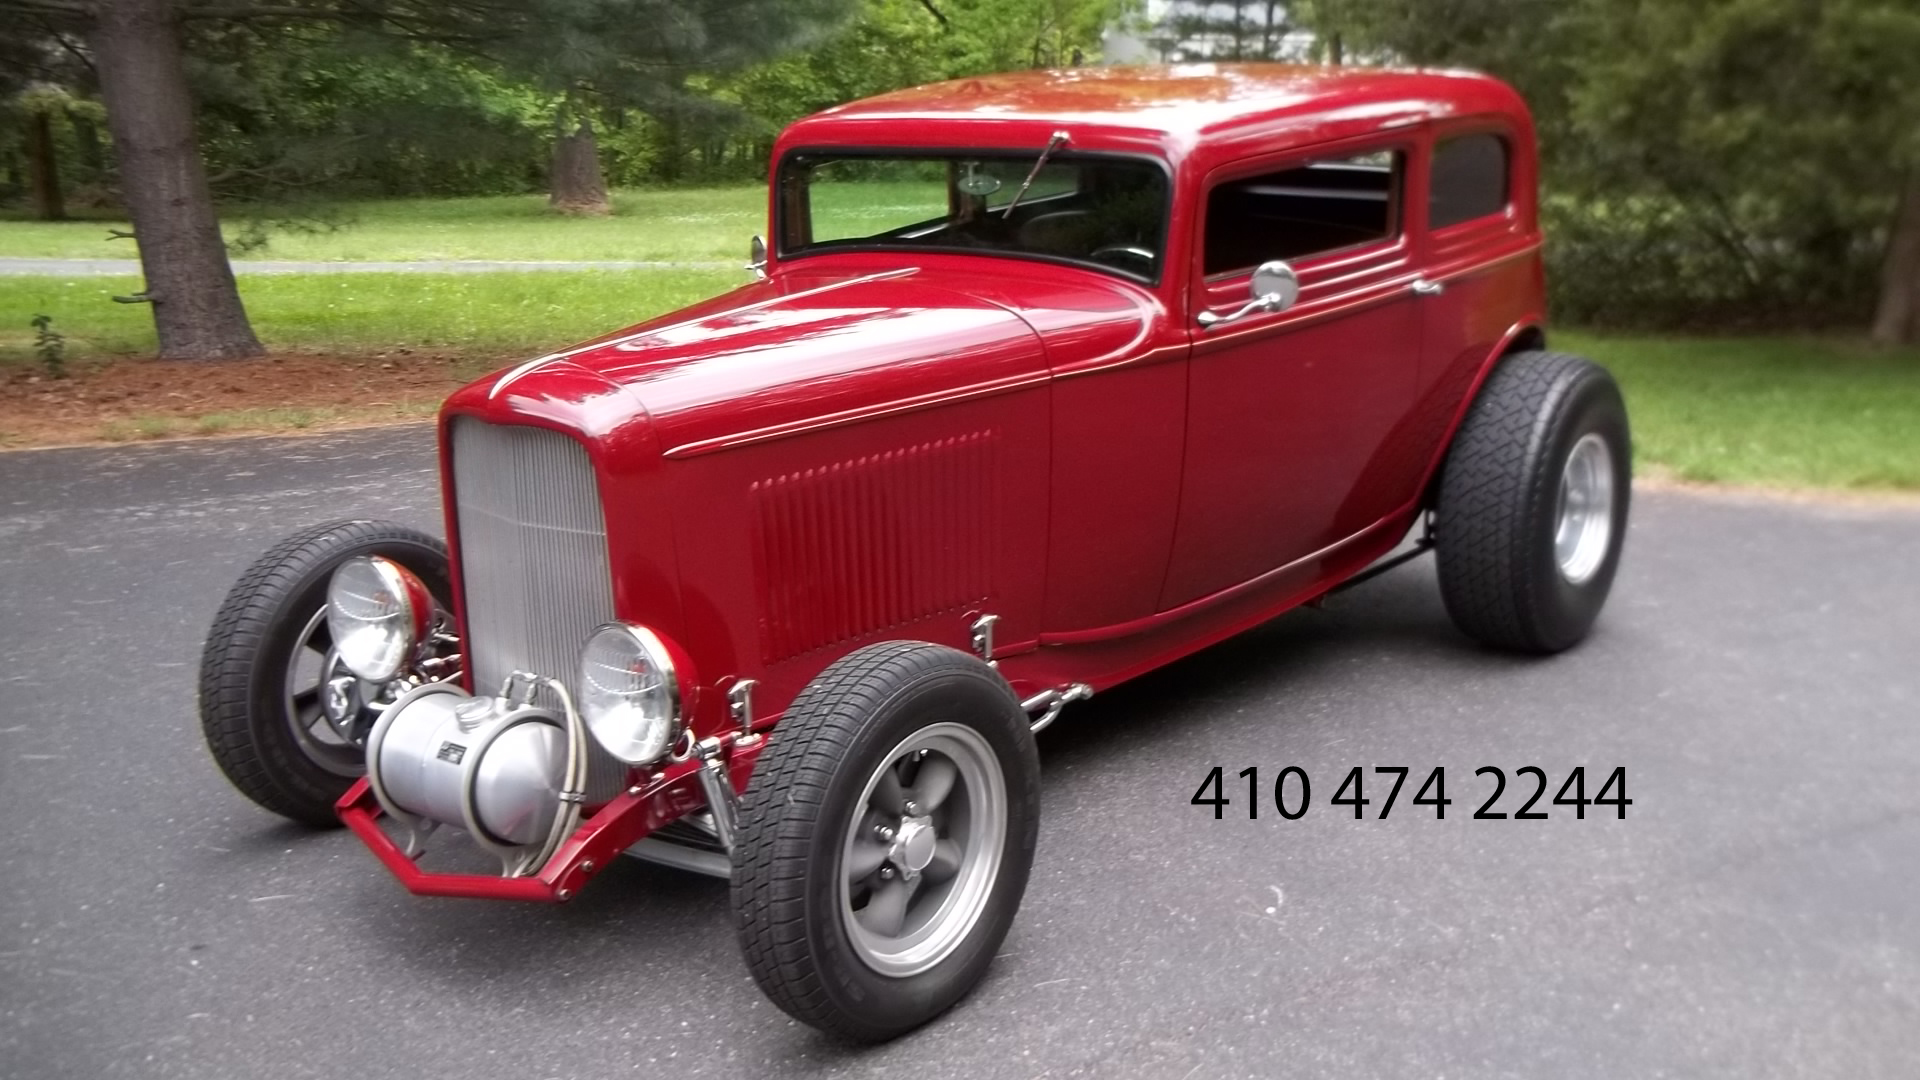 Click image for larger version  Name:'32 Ford 4 sale -410 474 2244.jpg Views:76 Size:840.8 KB ID:74225